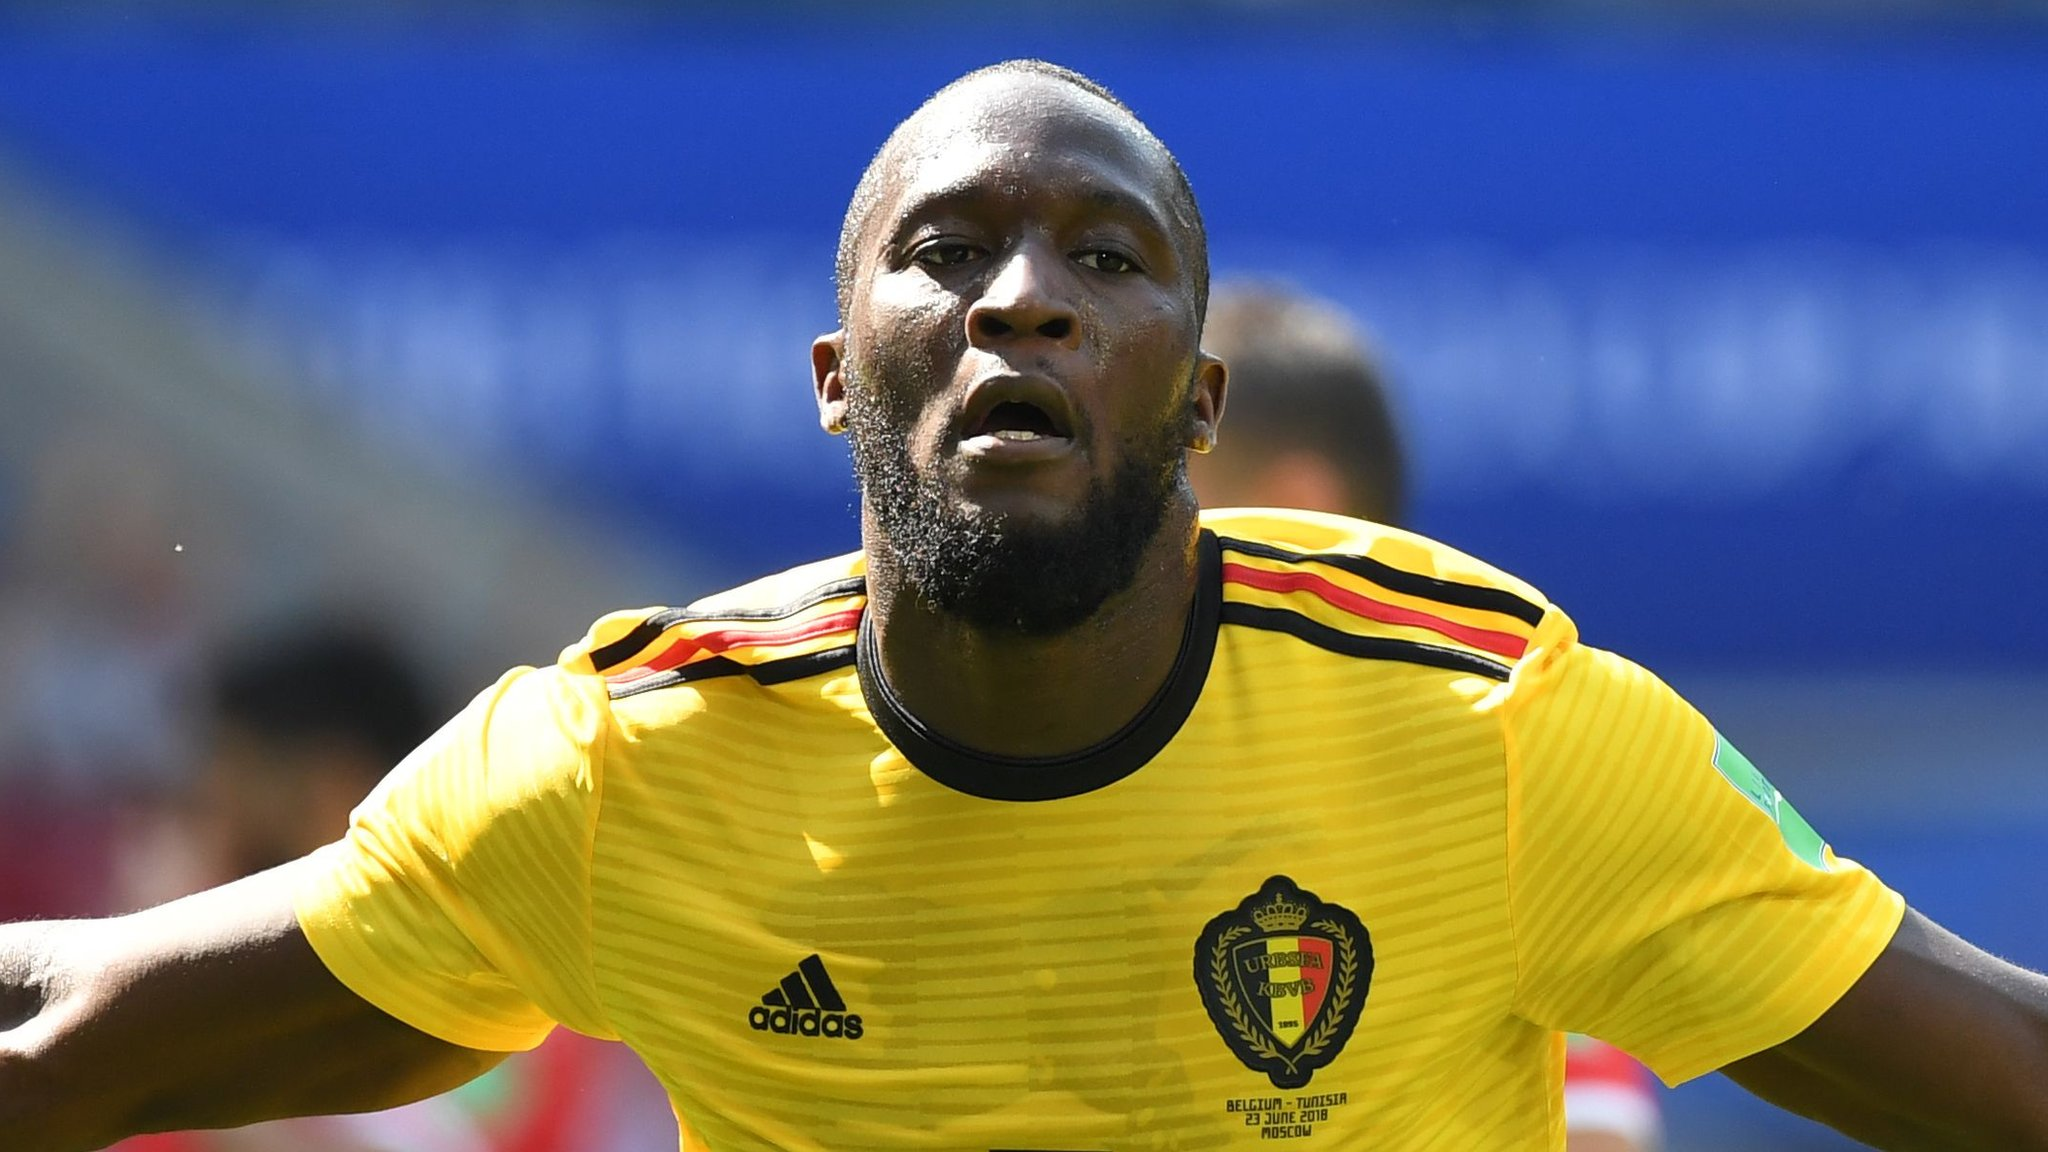 It's now or never for Belgium's golden generation - Lukaku